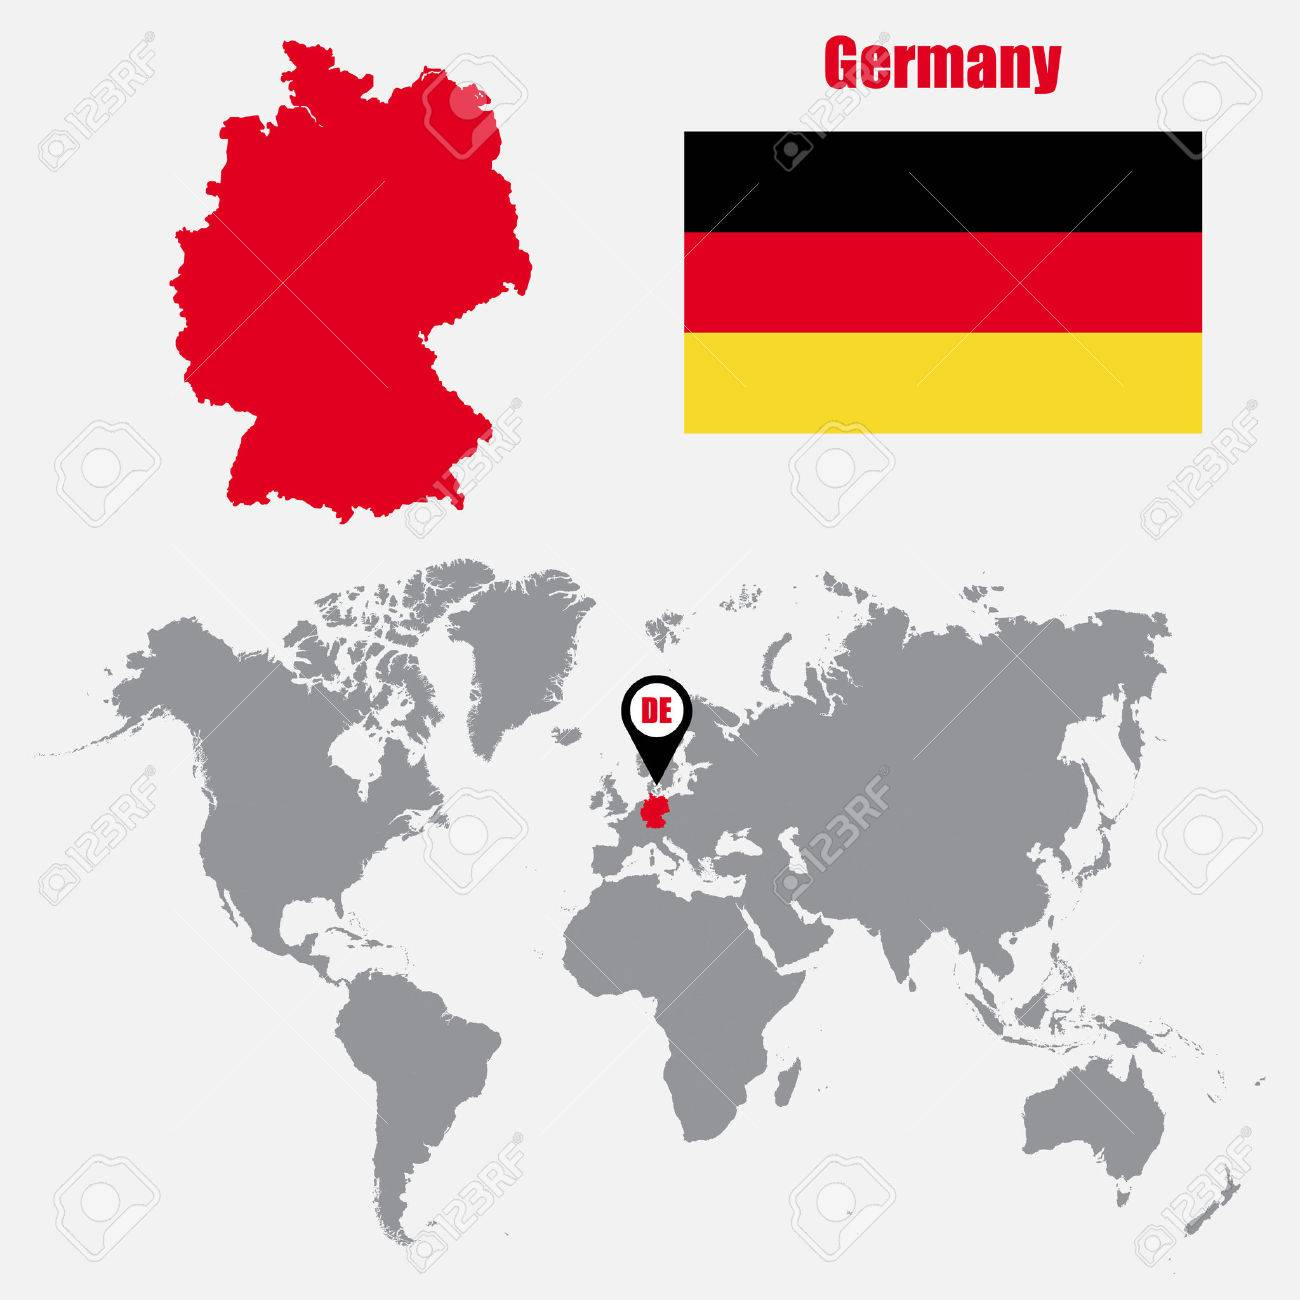 Germany Map On A World Map With Flag And Map Pointer Vector - Germany map in world map